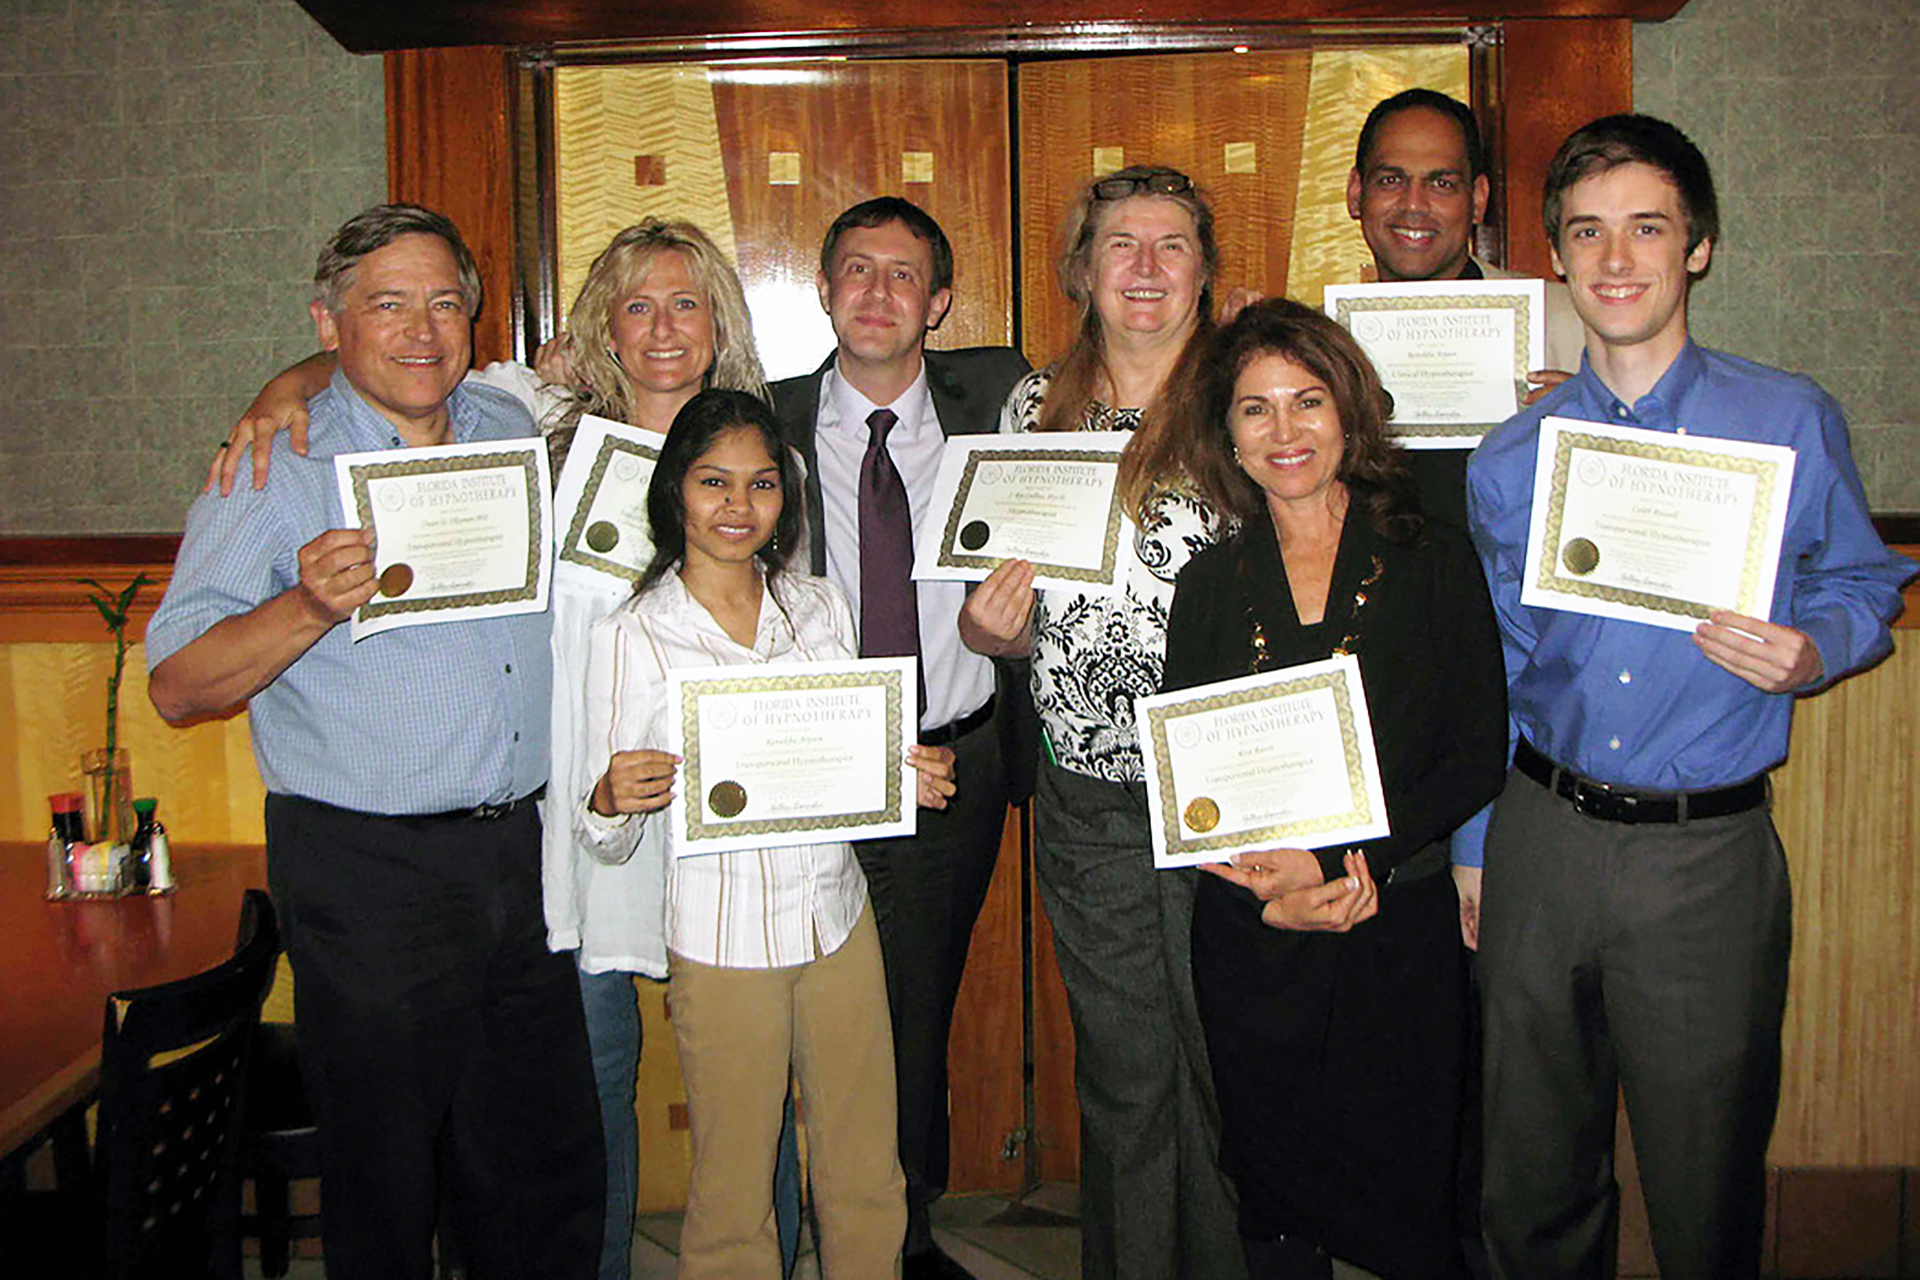 hypnotherapy training classes | Institute of Interpersonal ...